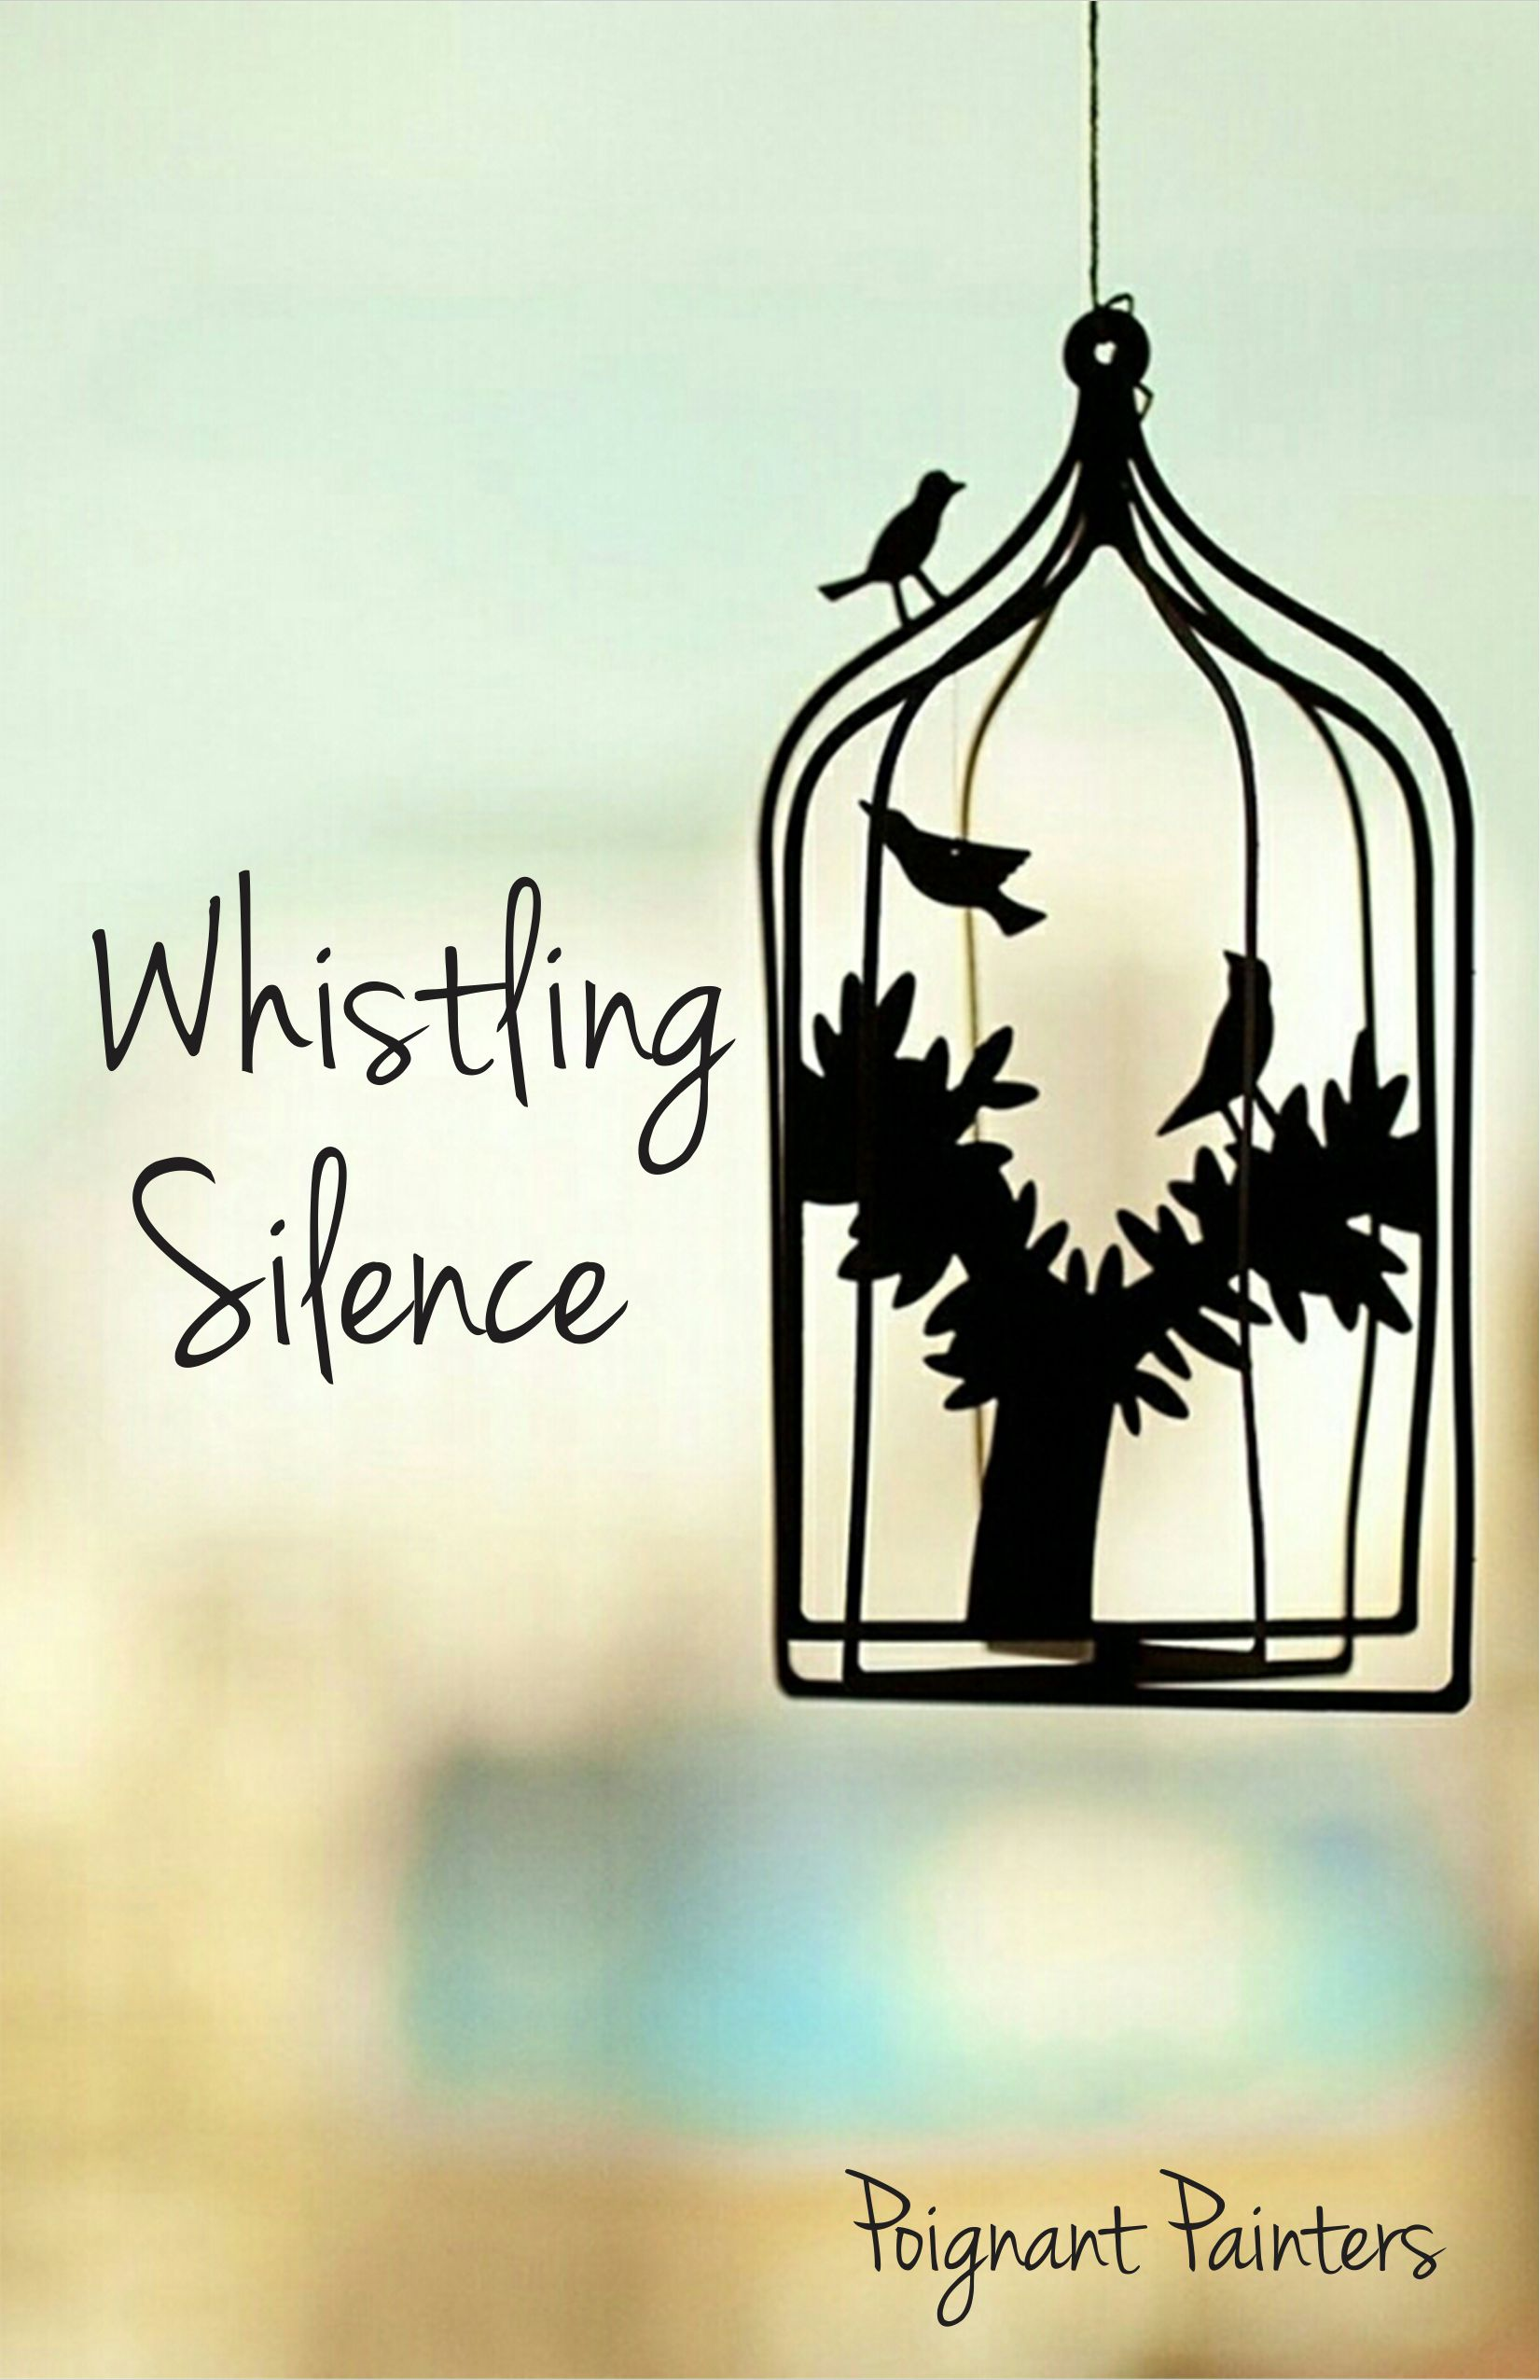 Whistling Silence